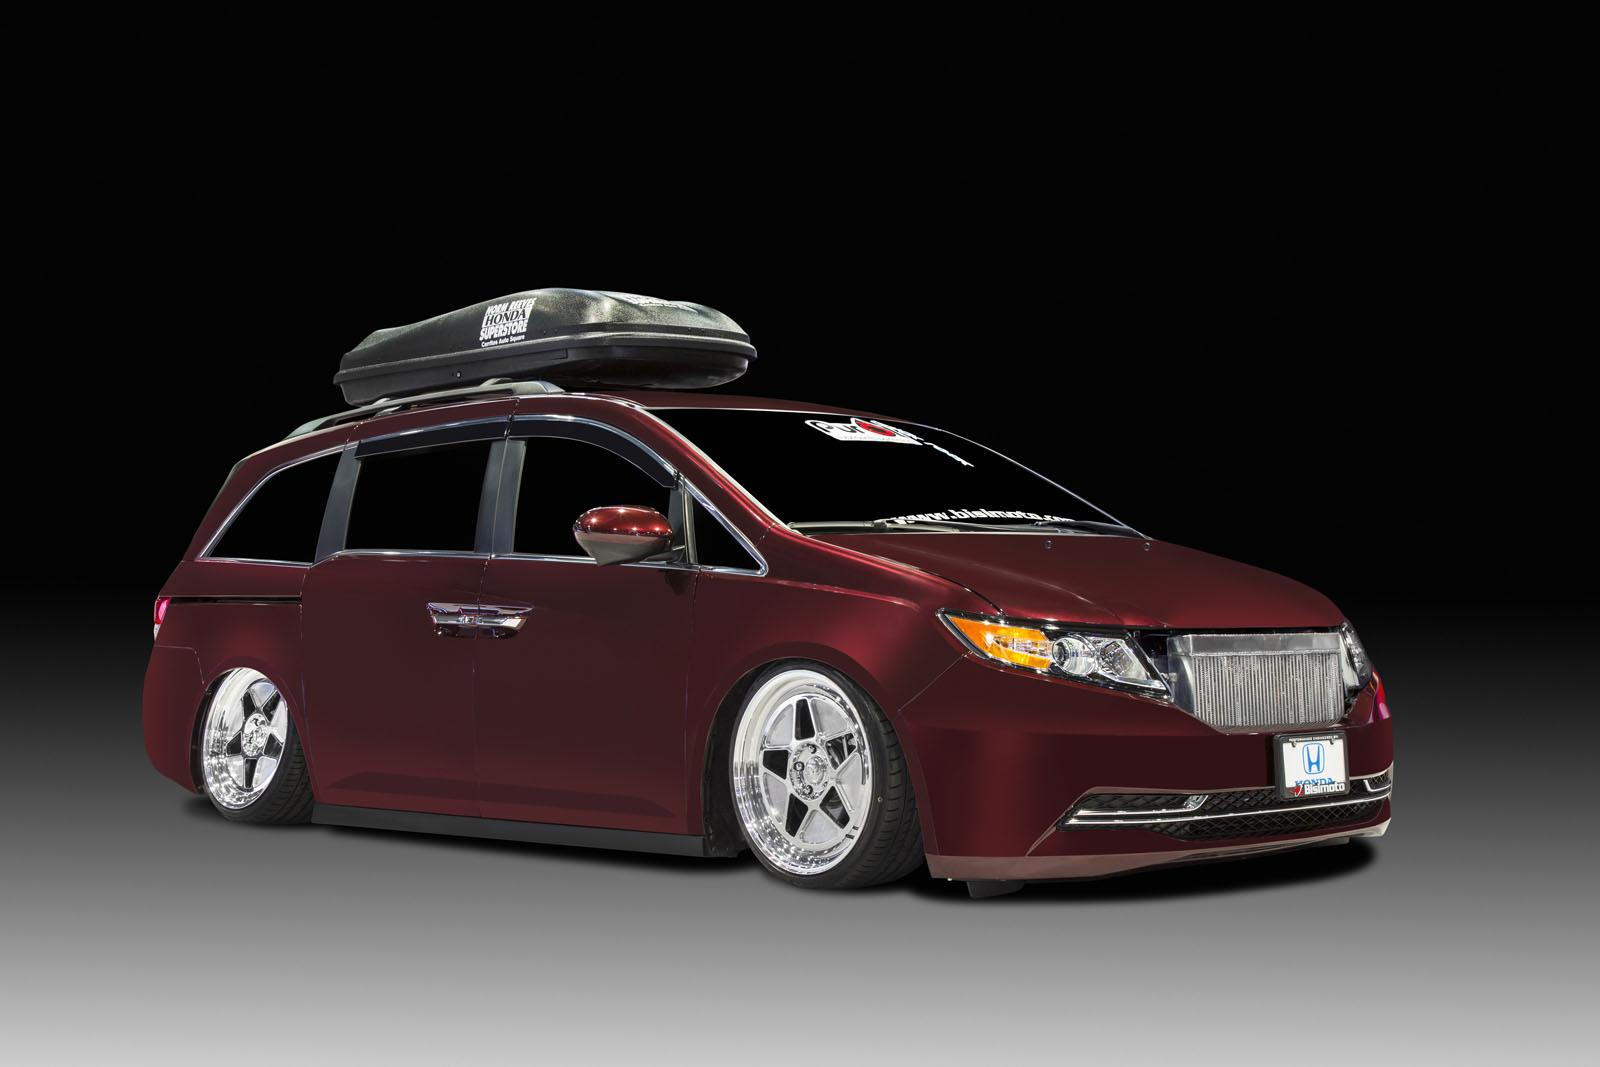 2014 honda odyssey gets 1 000 hp from bisimoto. Black Bedroom Furniture Sets. Home Design Ideas